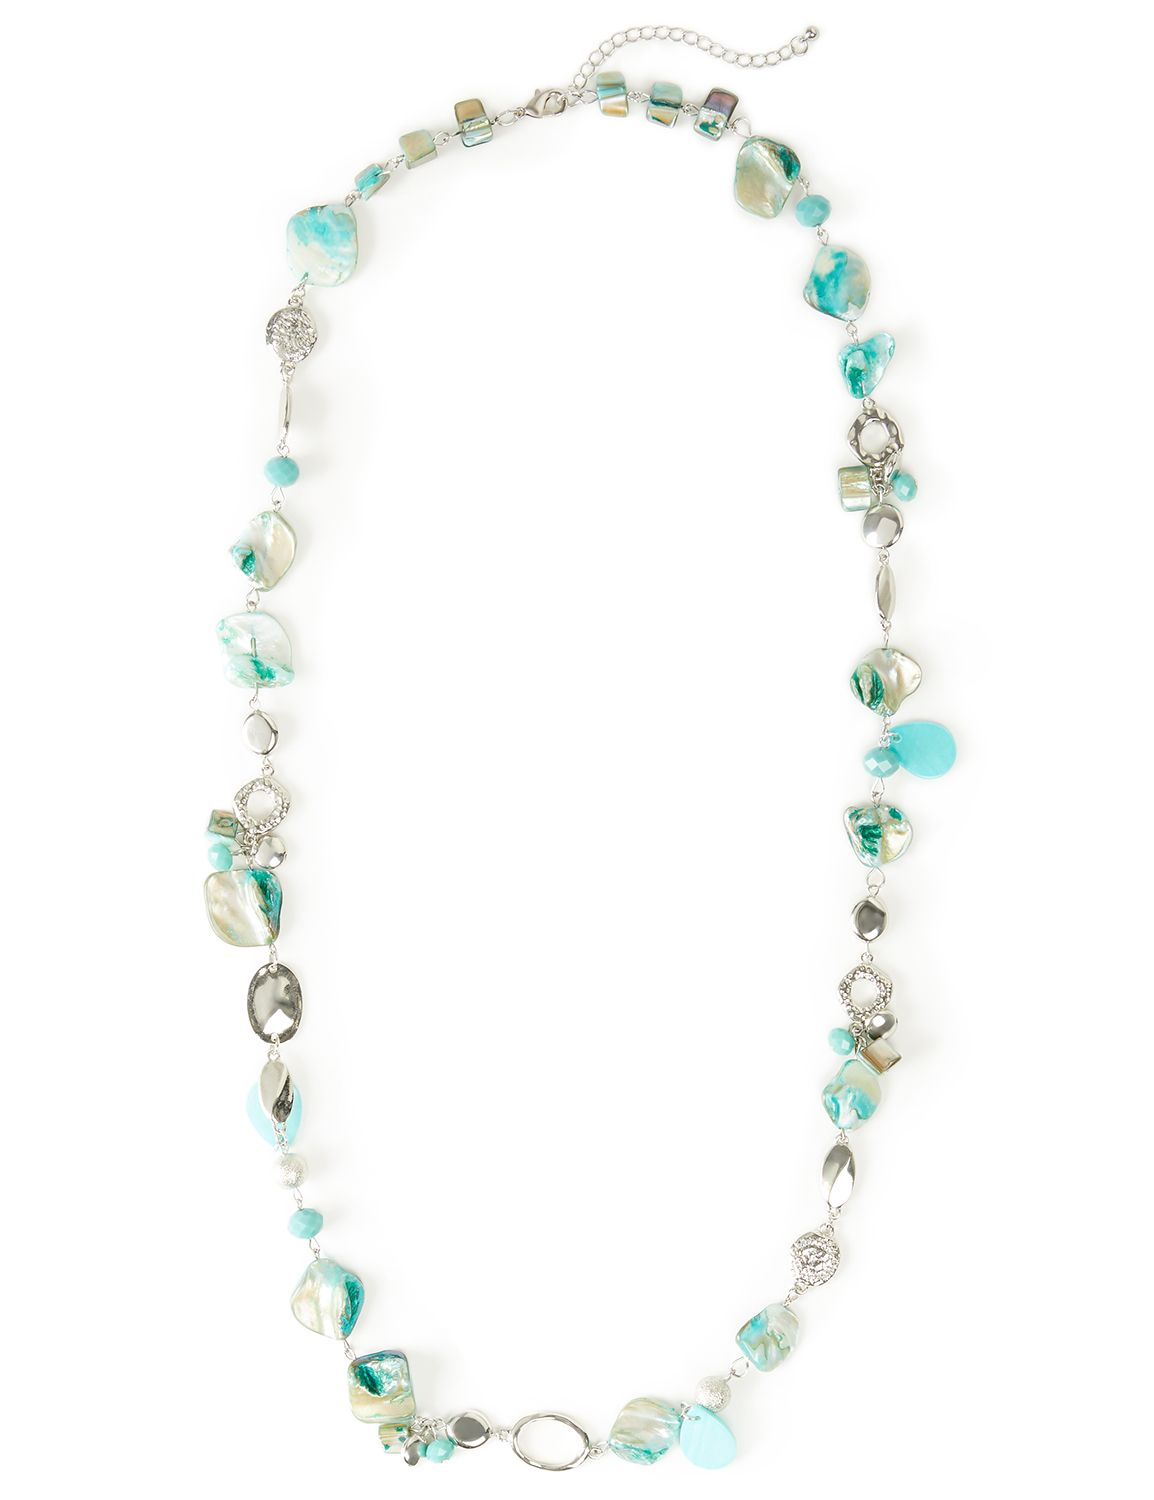 Maldives Shell Necklace CB Long Shell Rope teal NK 409385NZ MP-300097706